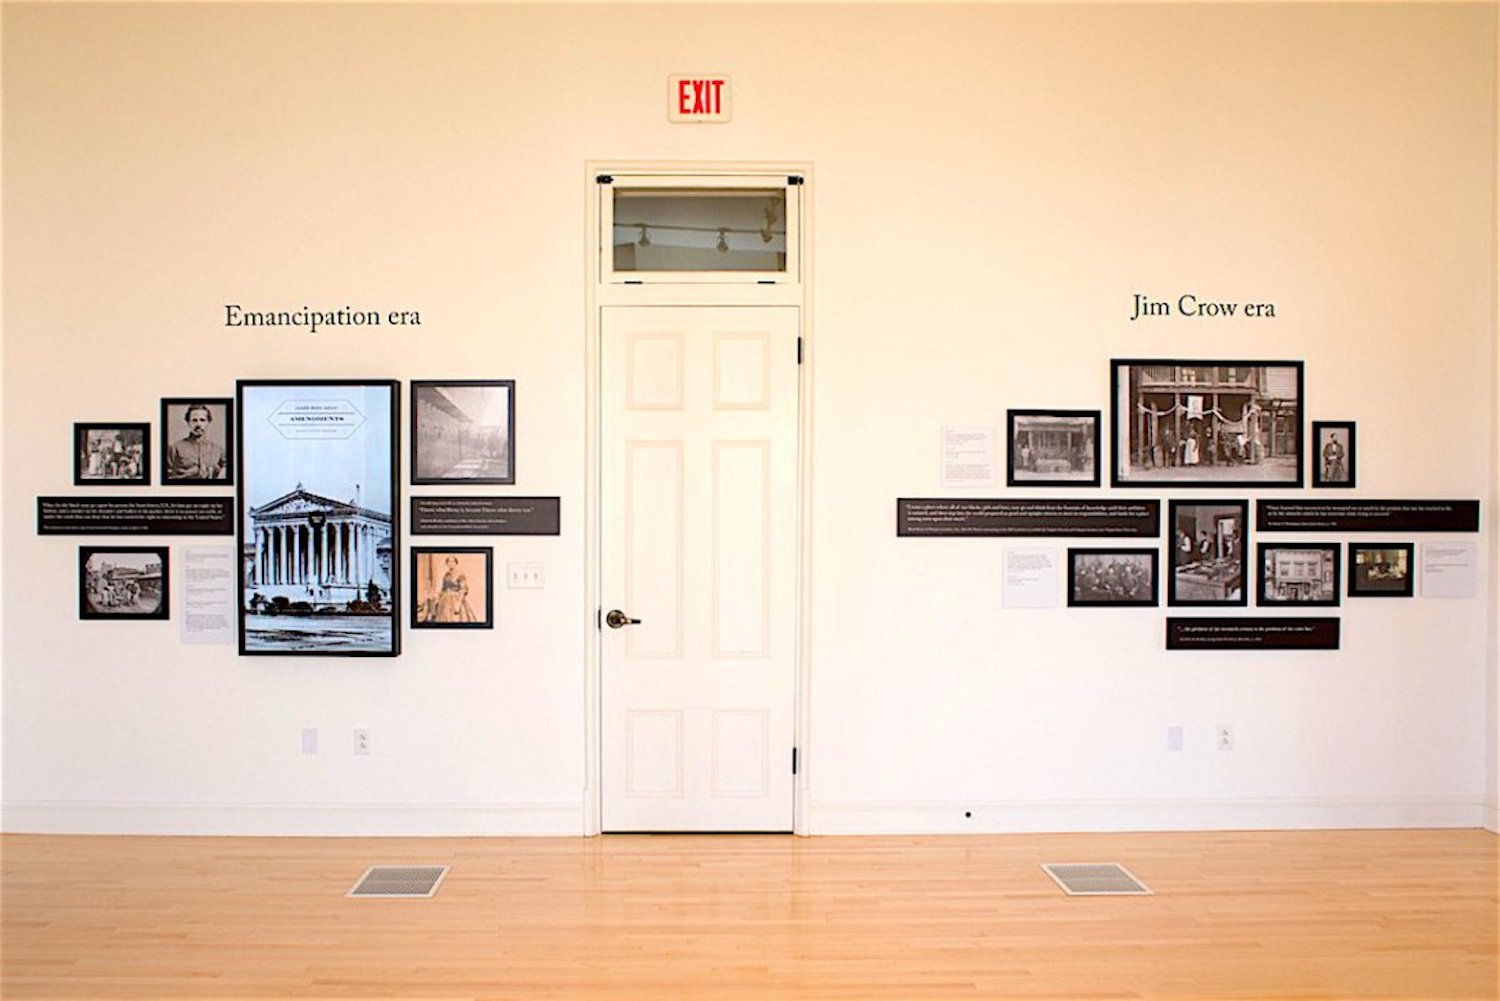 Black History Museum and Cultural Center of Virginia, American Museum, African American Museums, African Museums, Cultural Museums, KINDR'D Magazine, KINDR'D